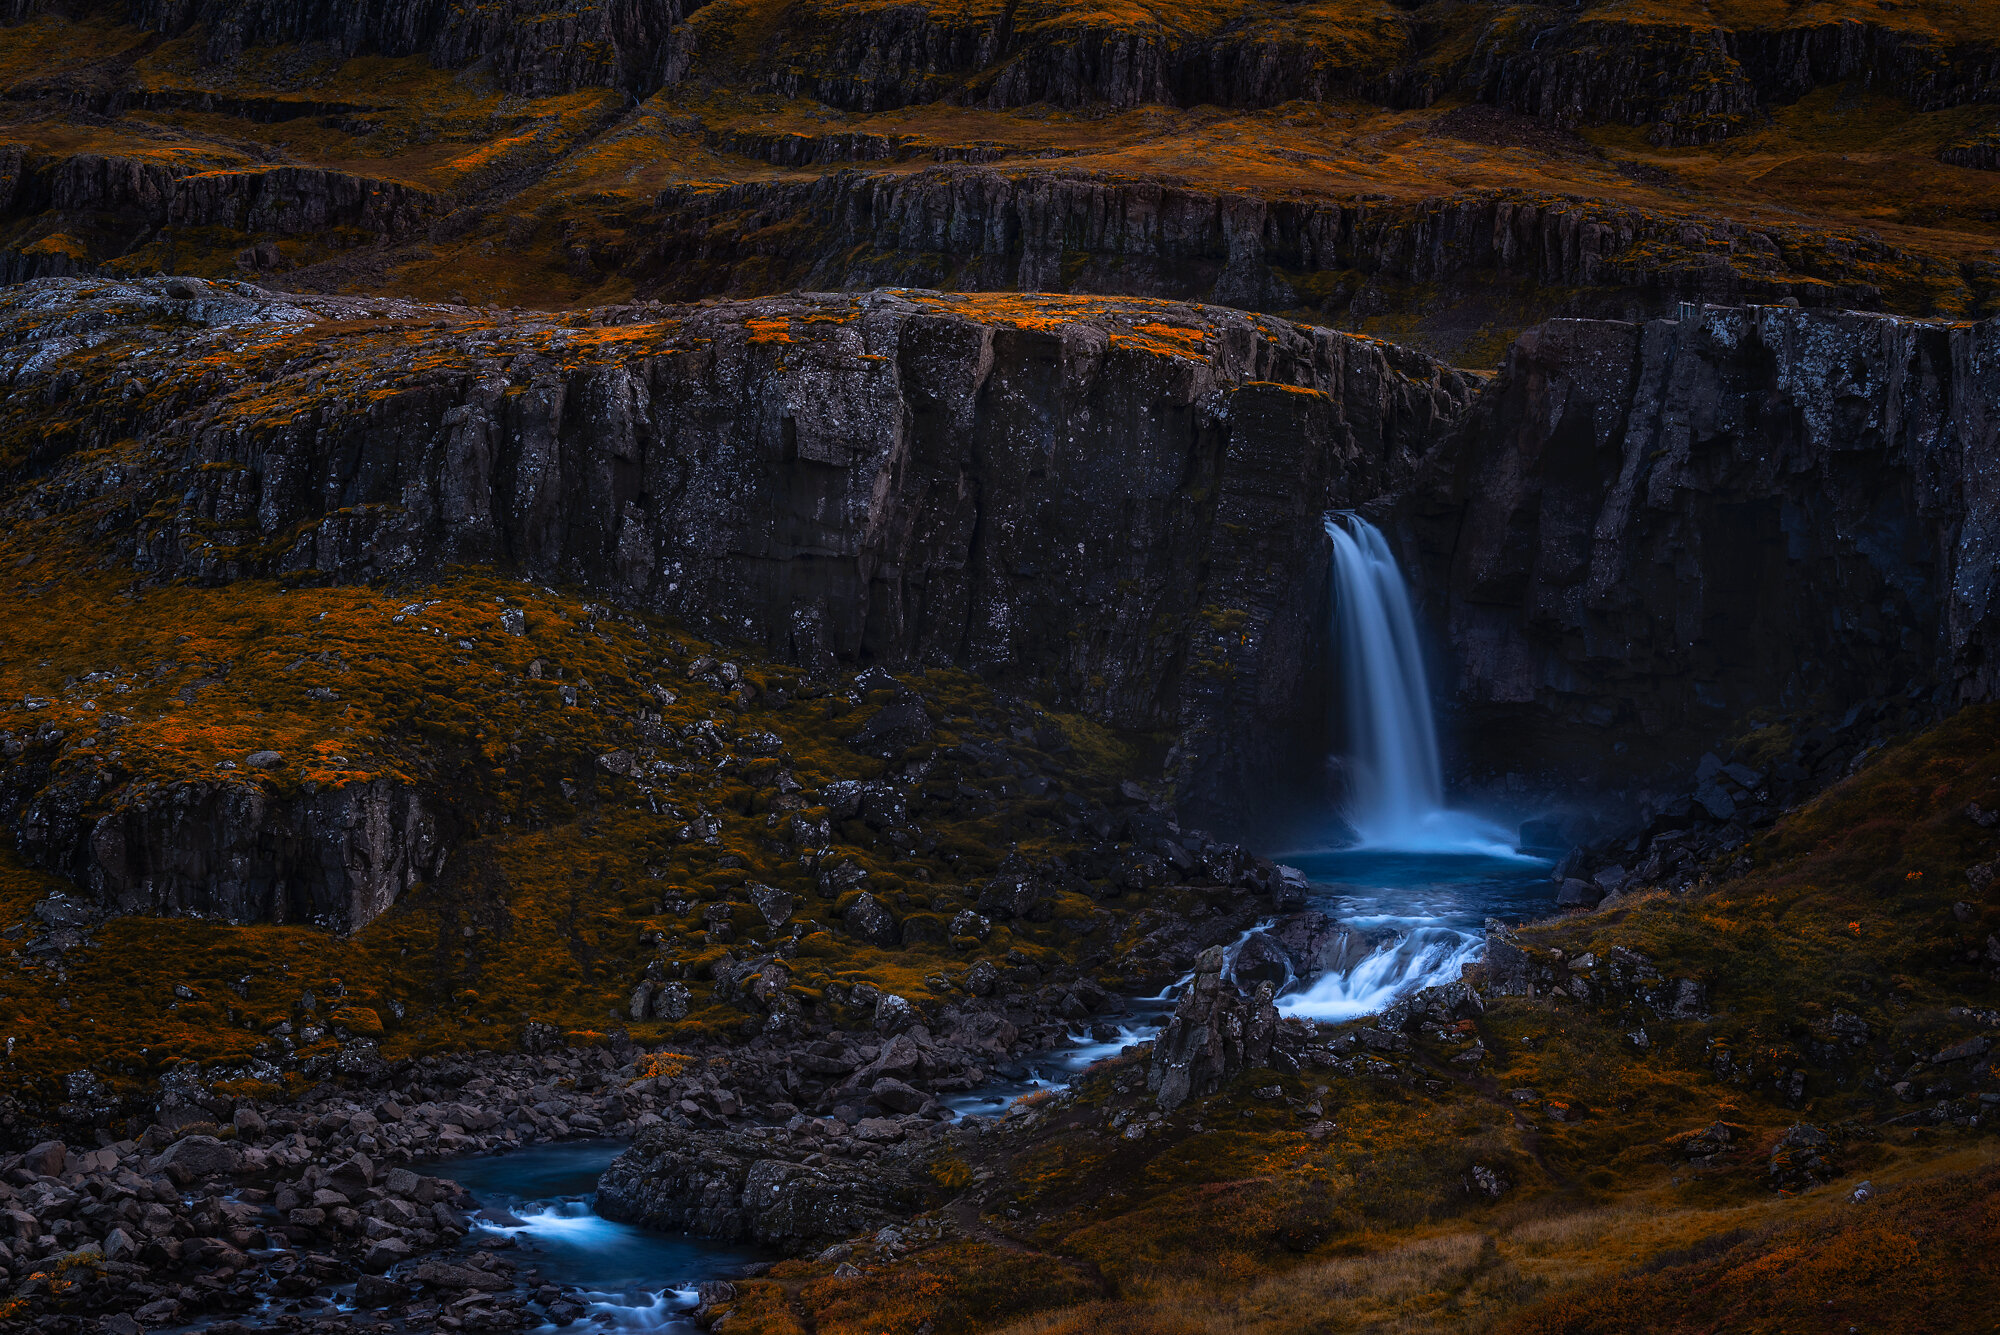 Iceland Landscape Photography: 'Oxi Pass'